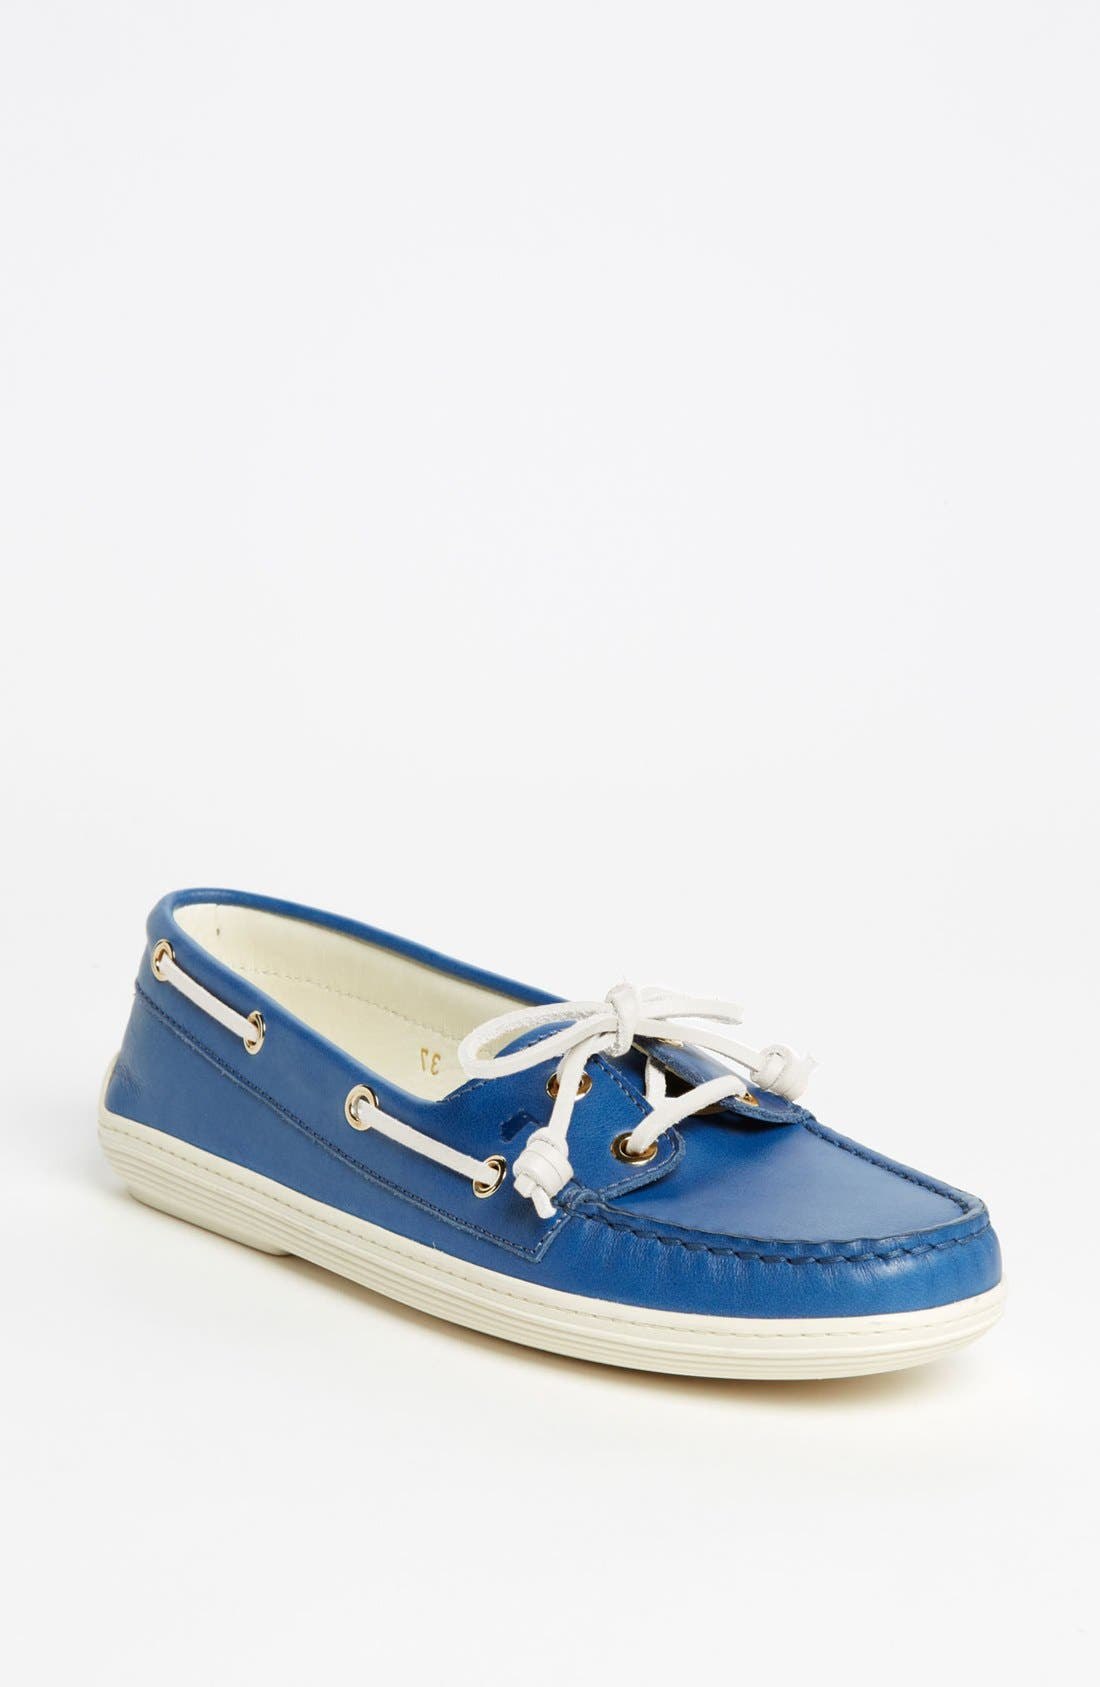 Alternate Image 1 Selected - Tod's 'Marlin Barca' Boat Shoe